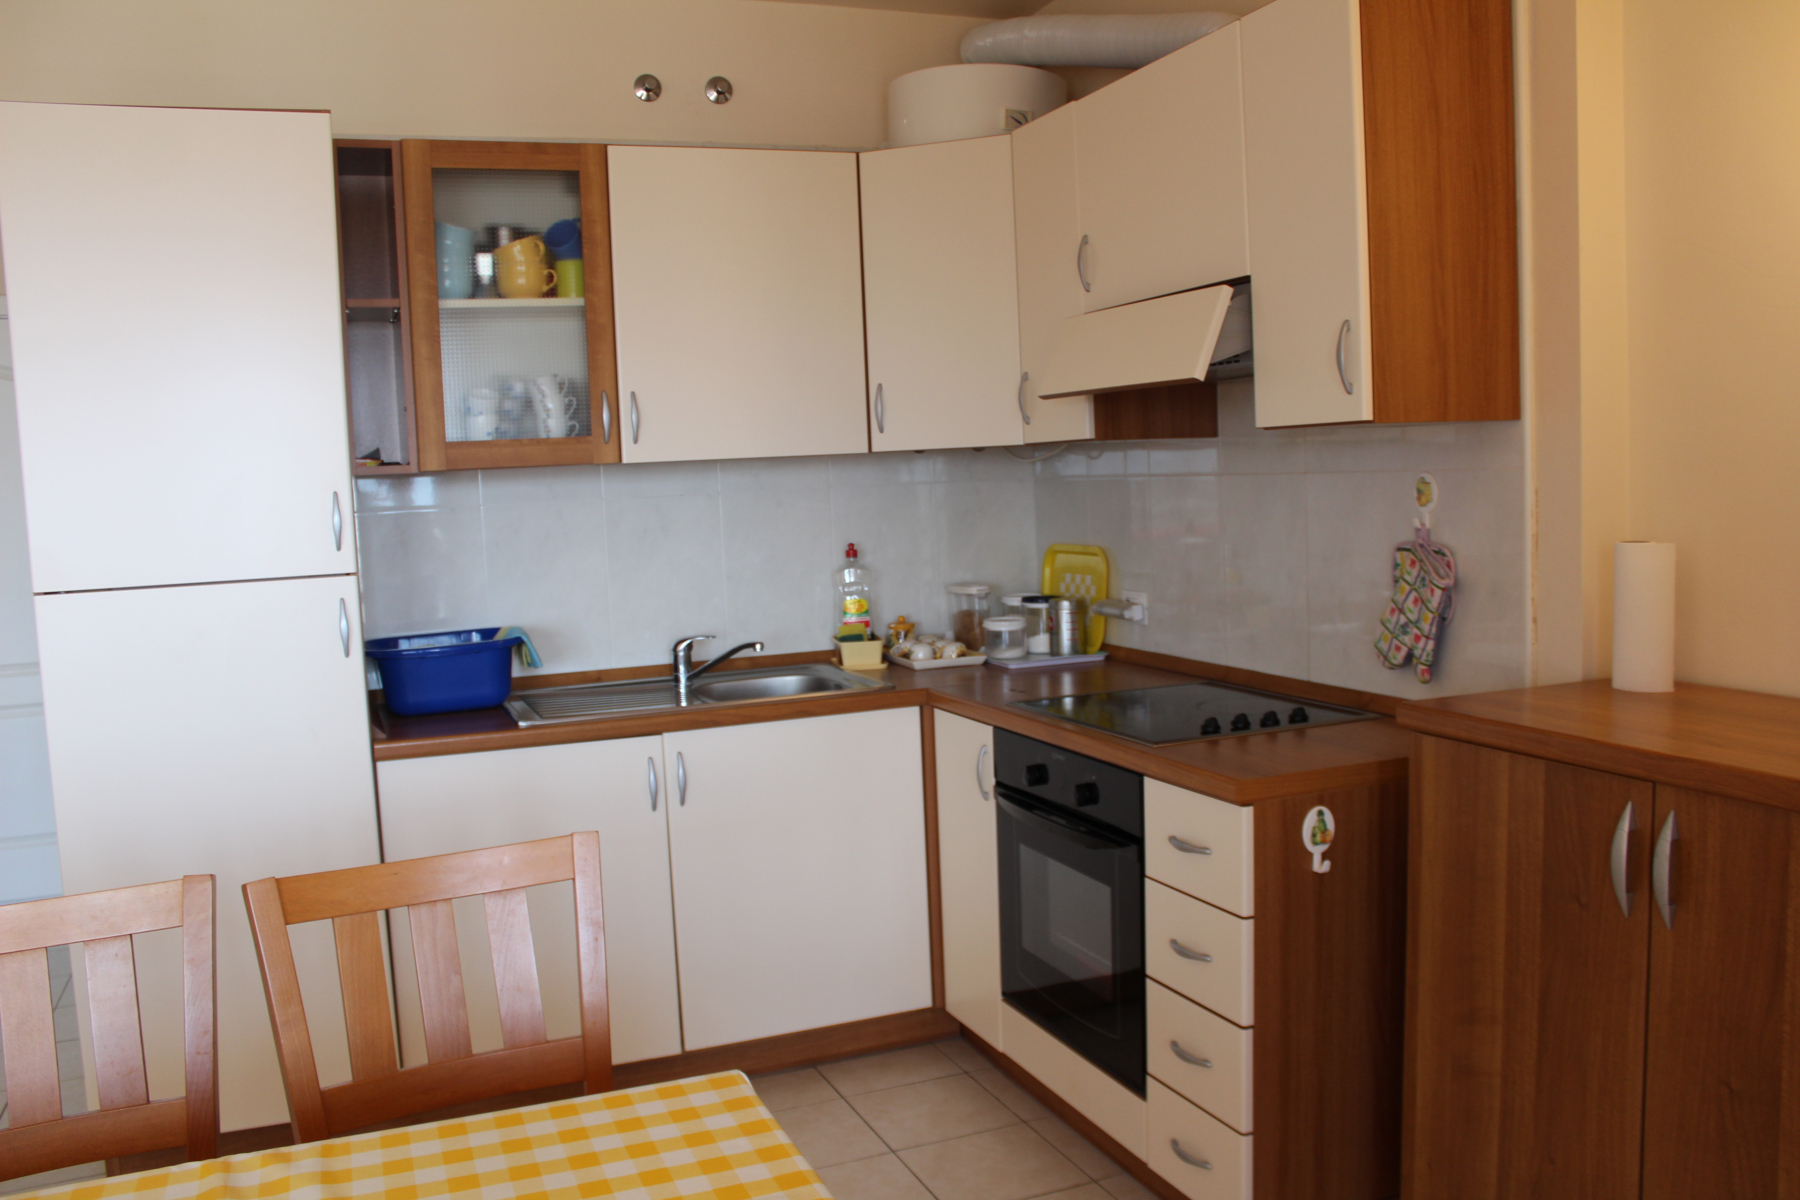 Properties for Sale in Tenerife, Canary Islands, Spain | SylkWayStar Real Estate. Apartment with 2 bedrooms in Callao Salvaje. Image-25725